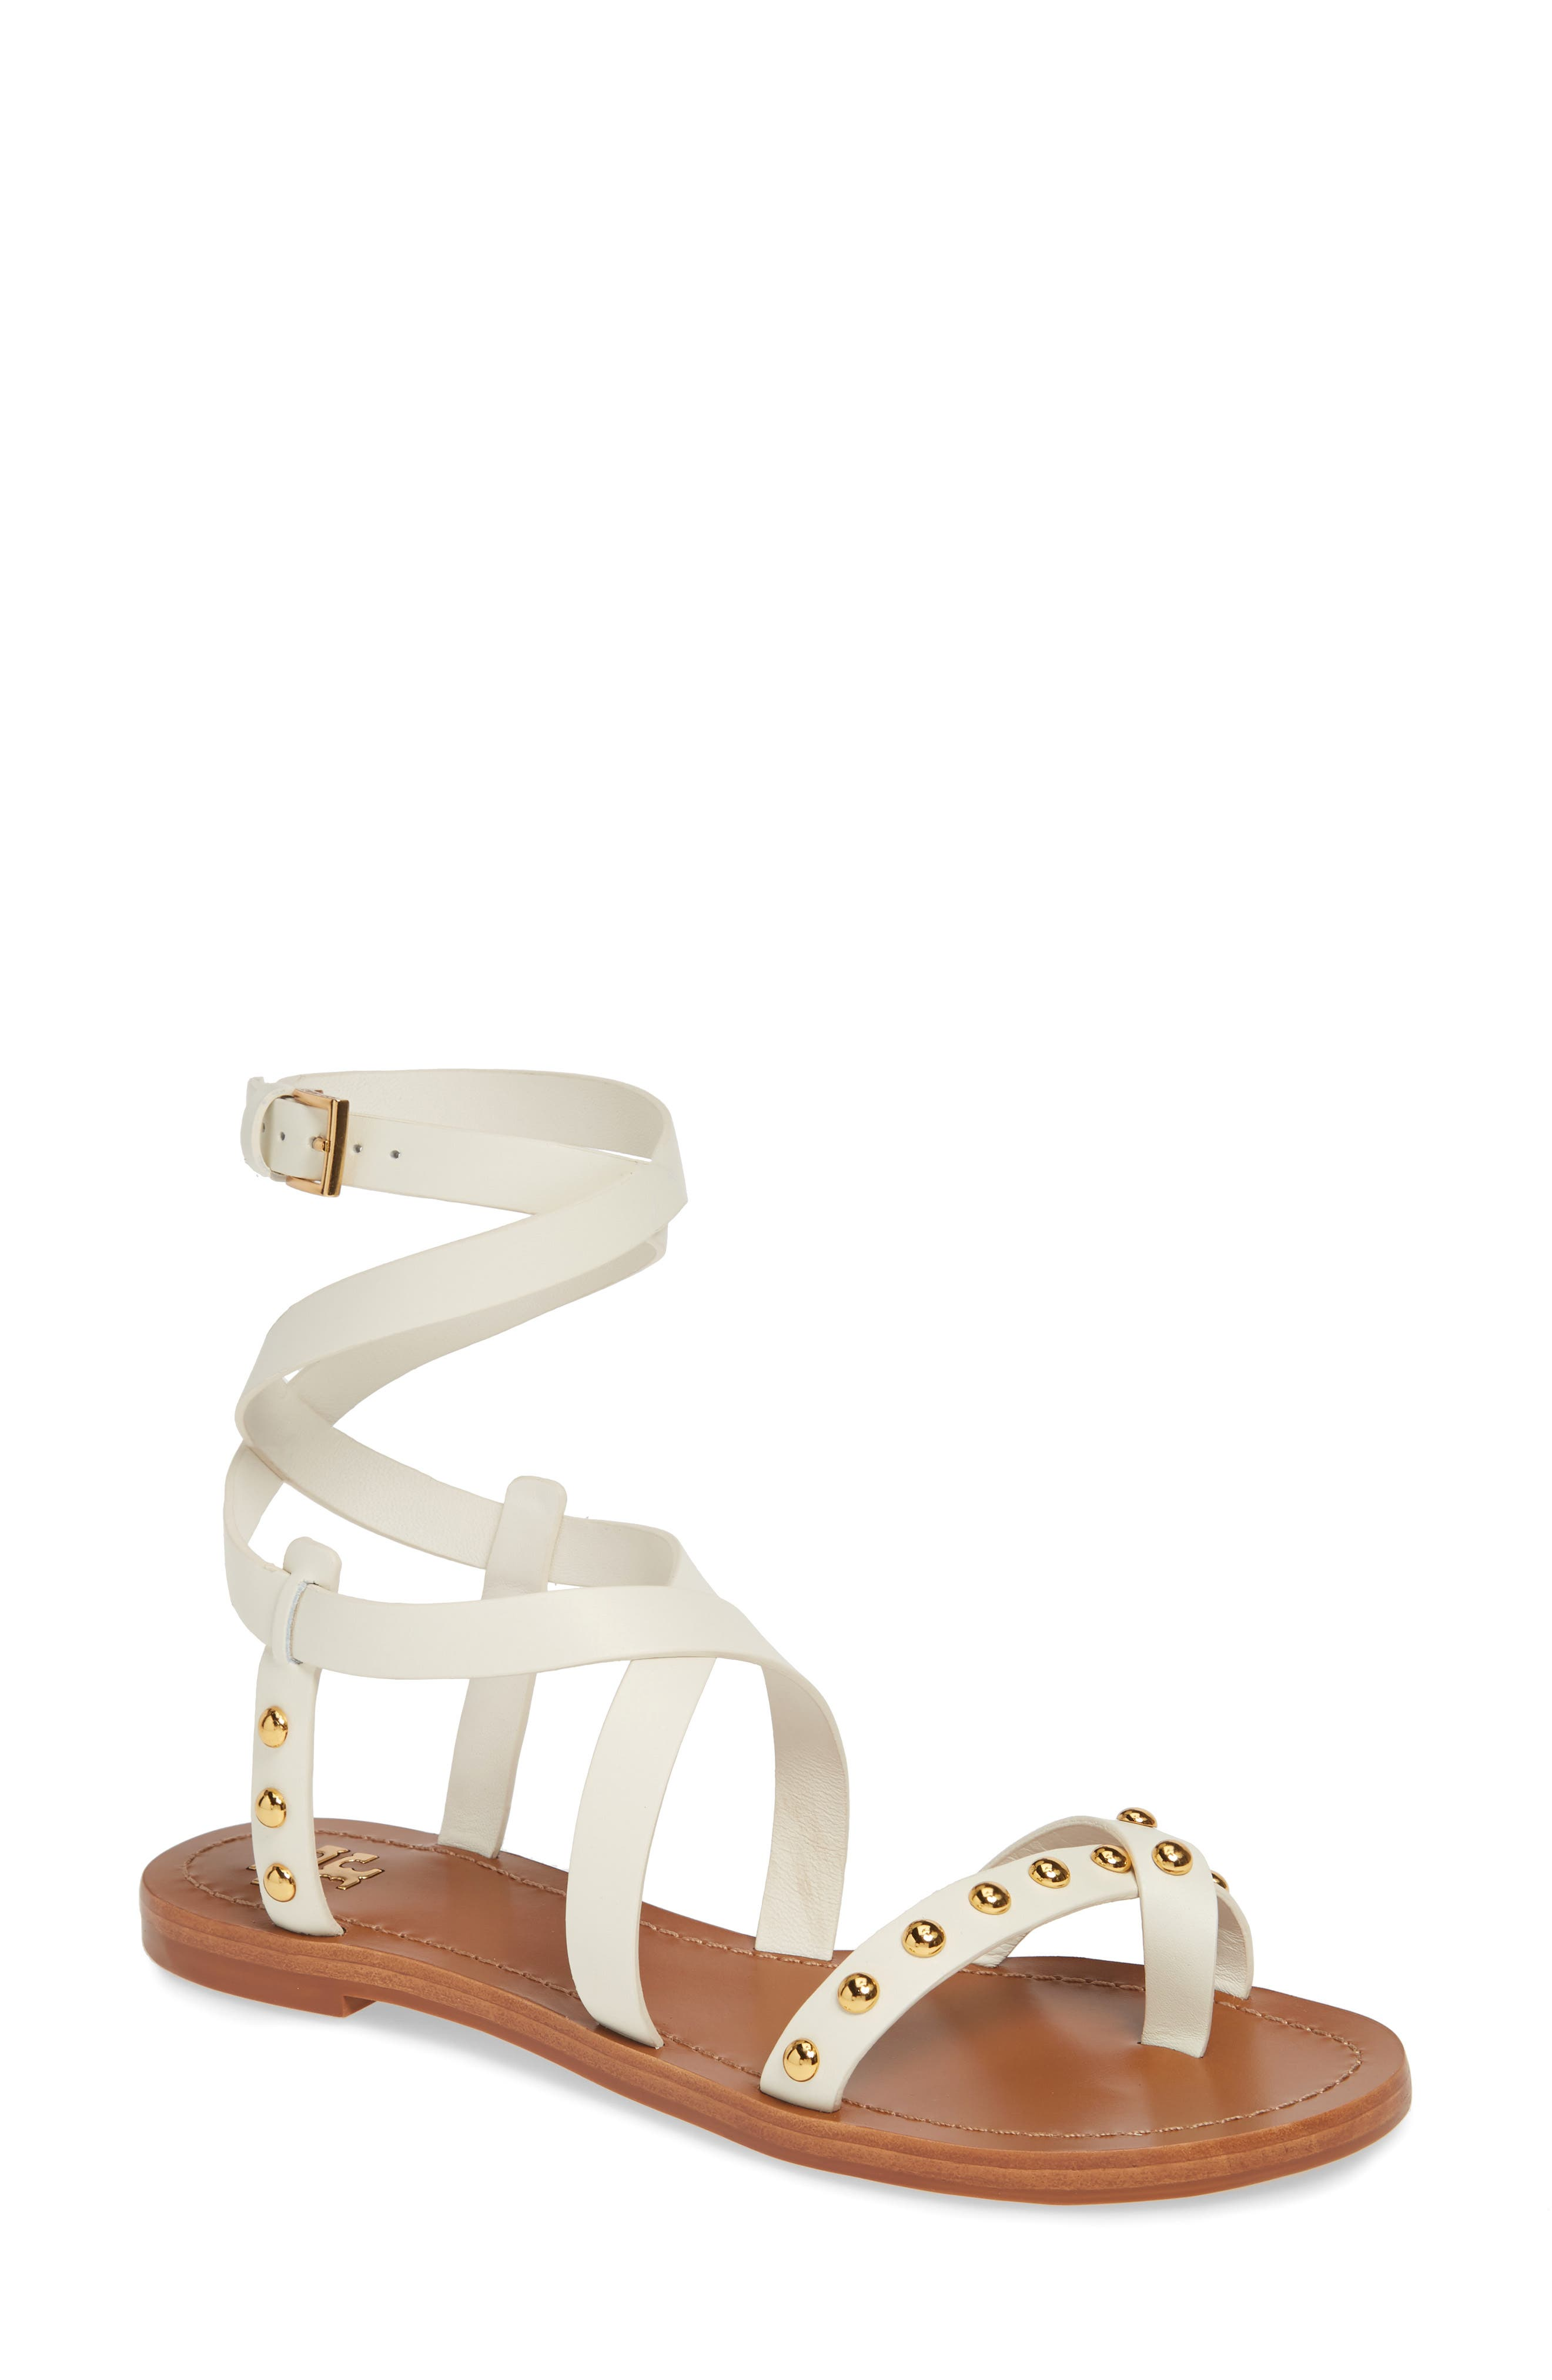 TORY BURCH, Ravello Studded Cage Sandal, Main thumbnail 1, color, PERFECT IVORY